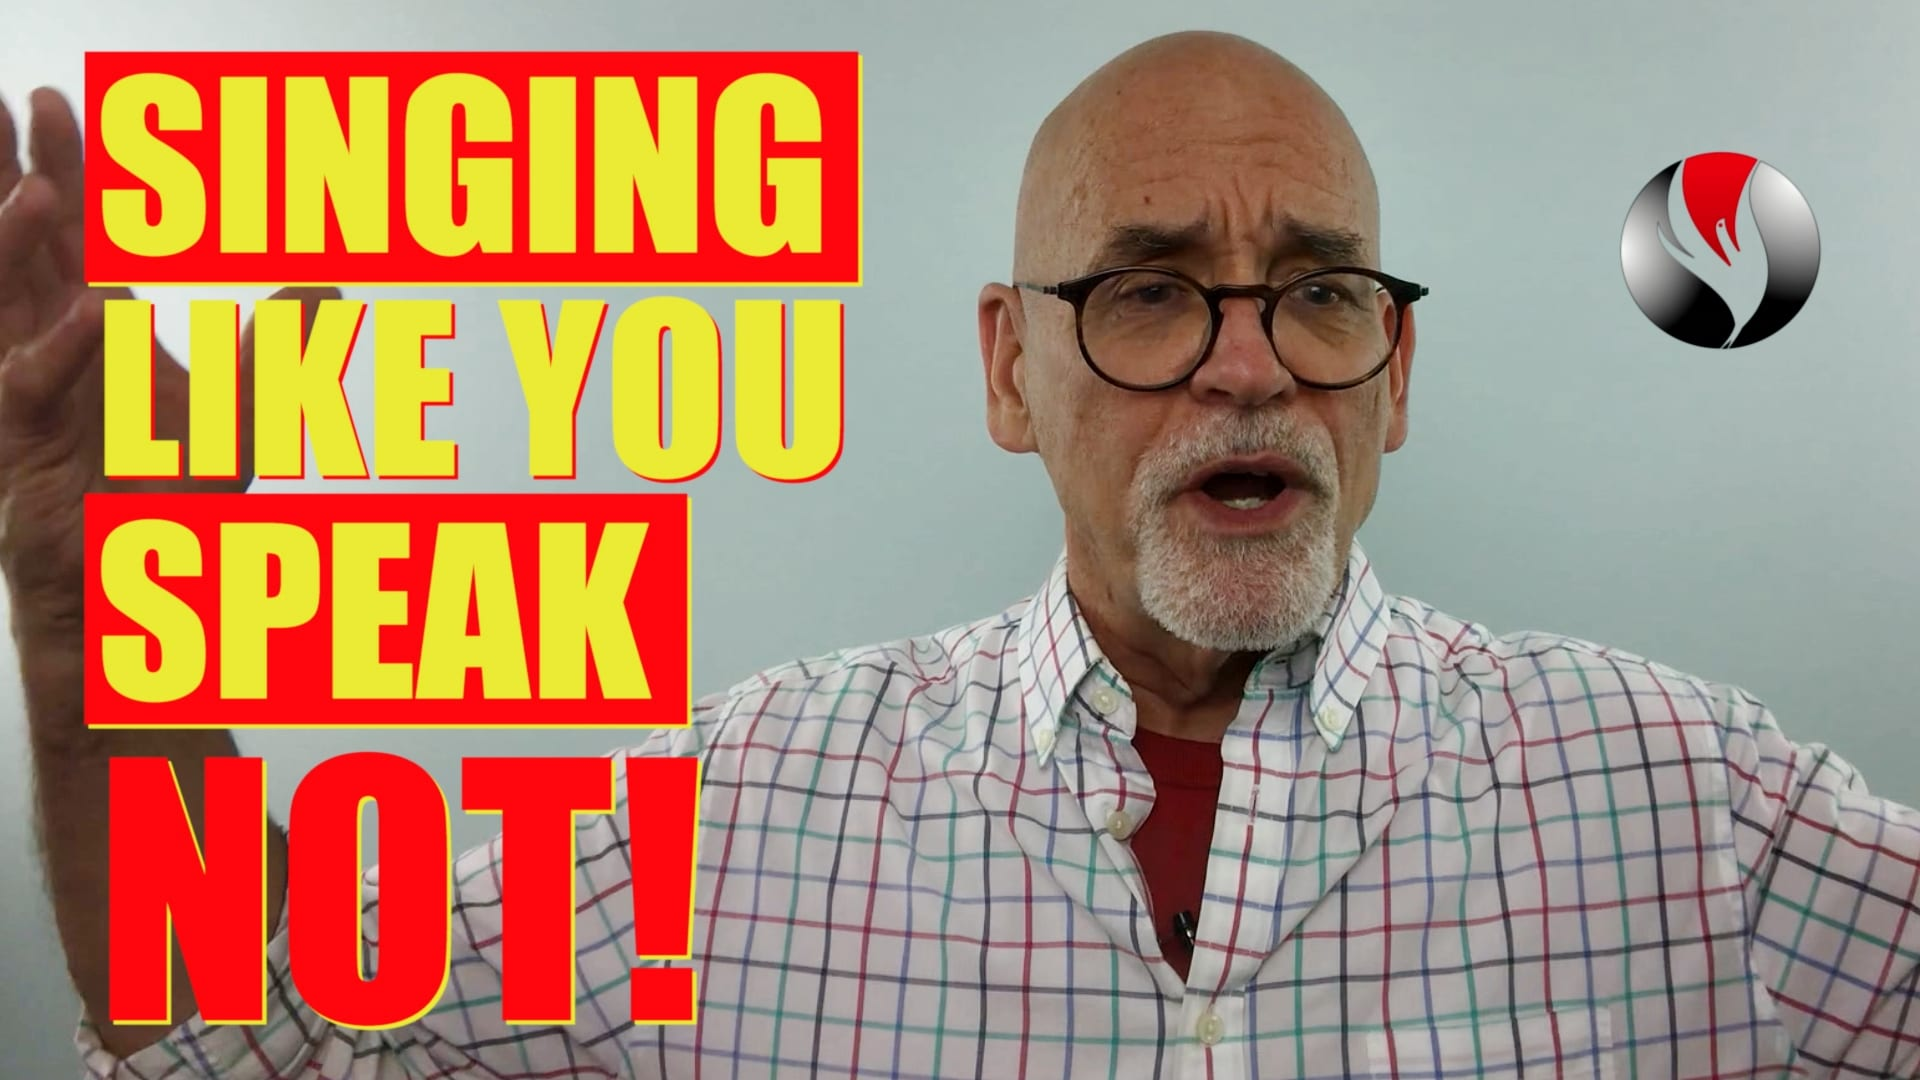 Singing Like You Speak – NOT!